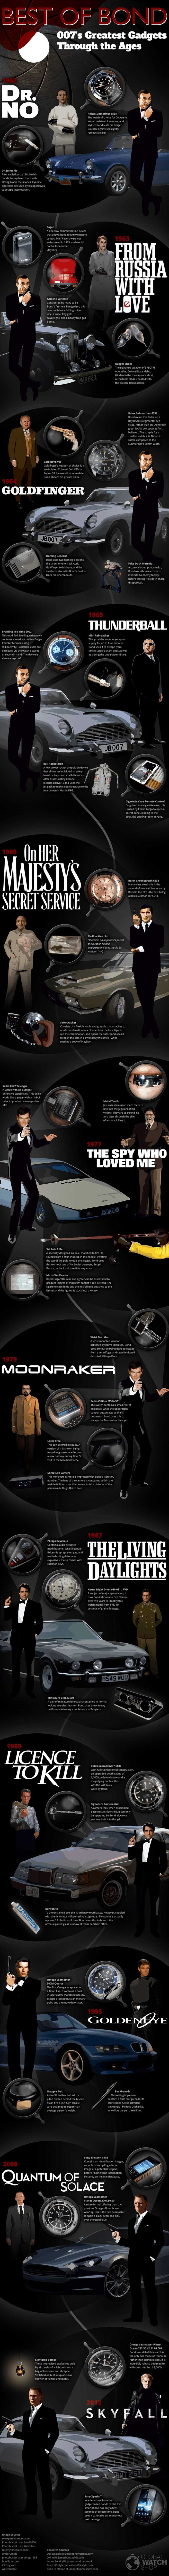 Best of Bond: 007's Greatest Gadgets Through the Ages [Infographic]